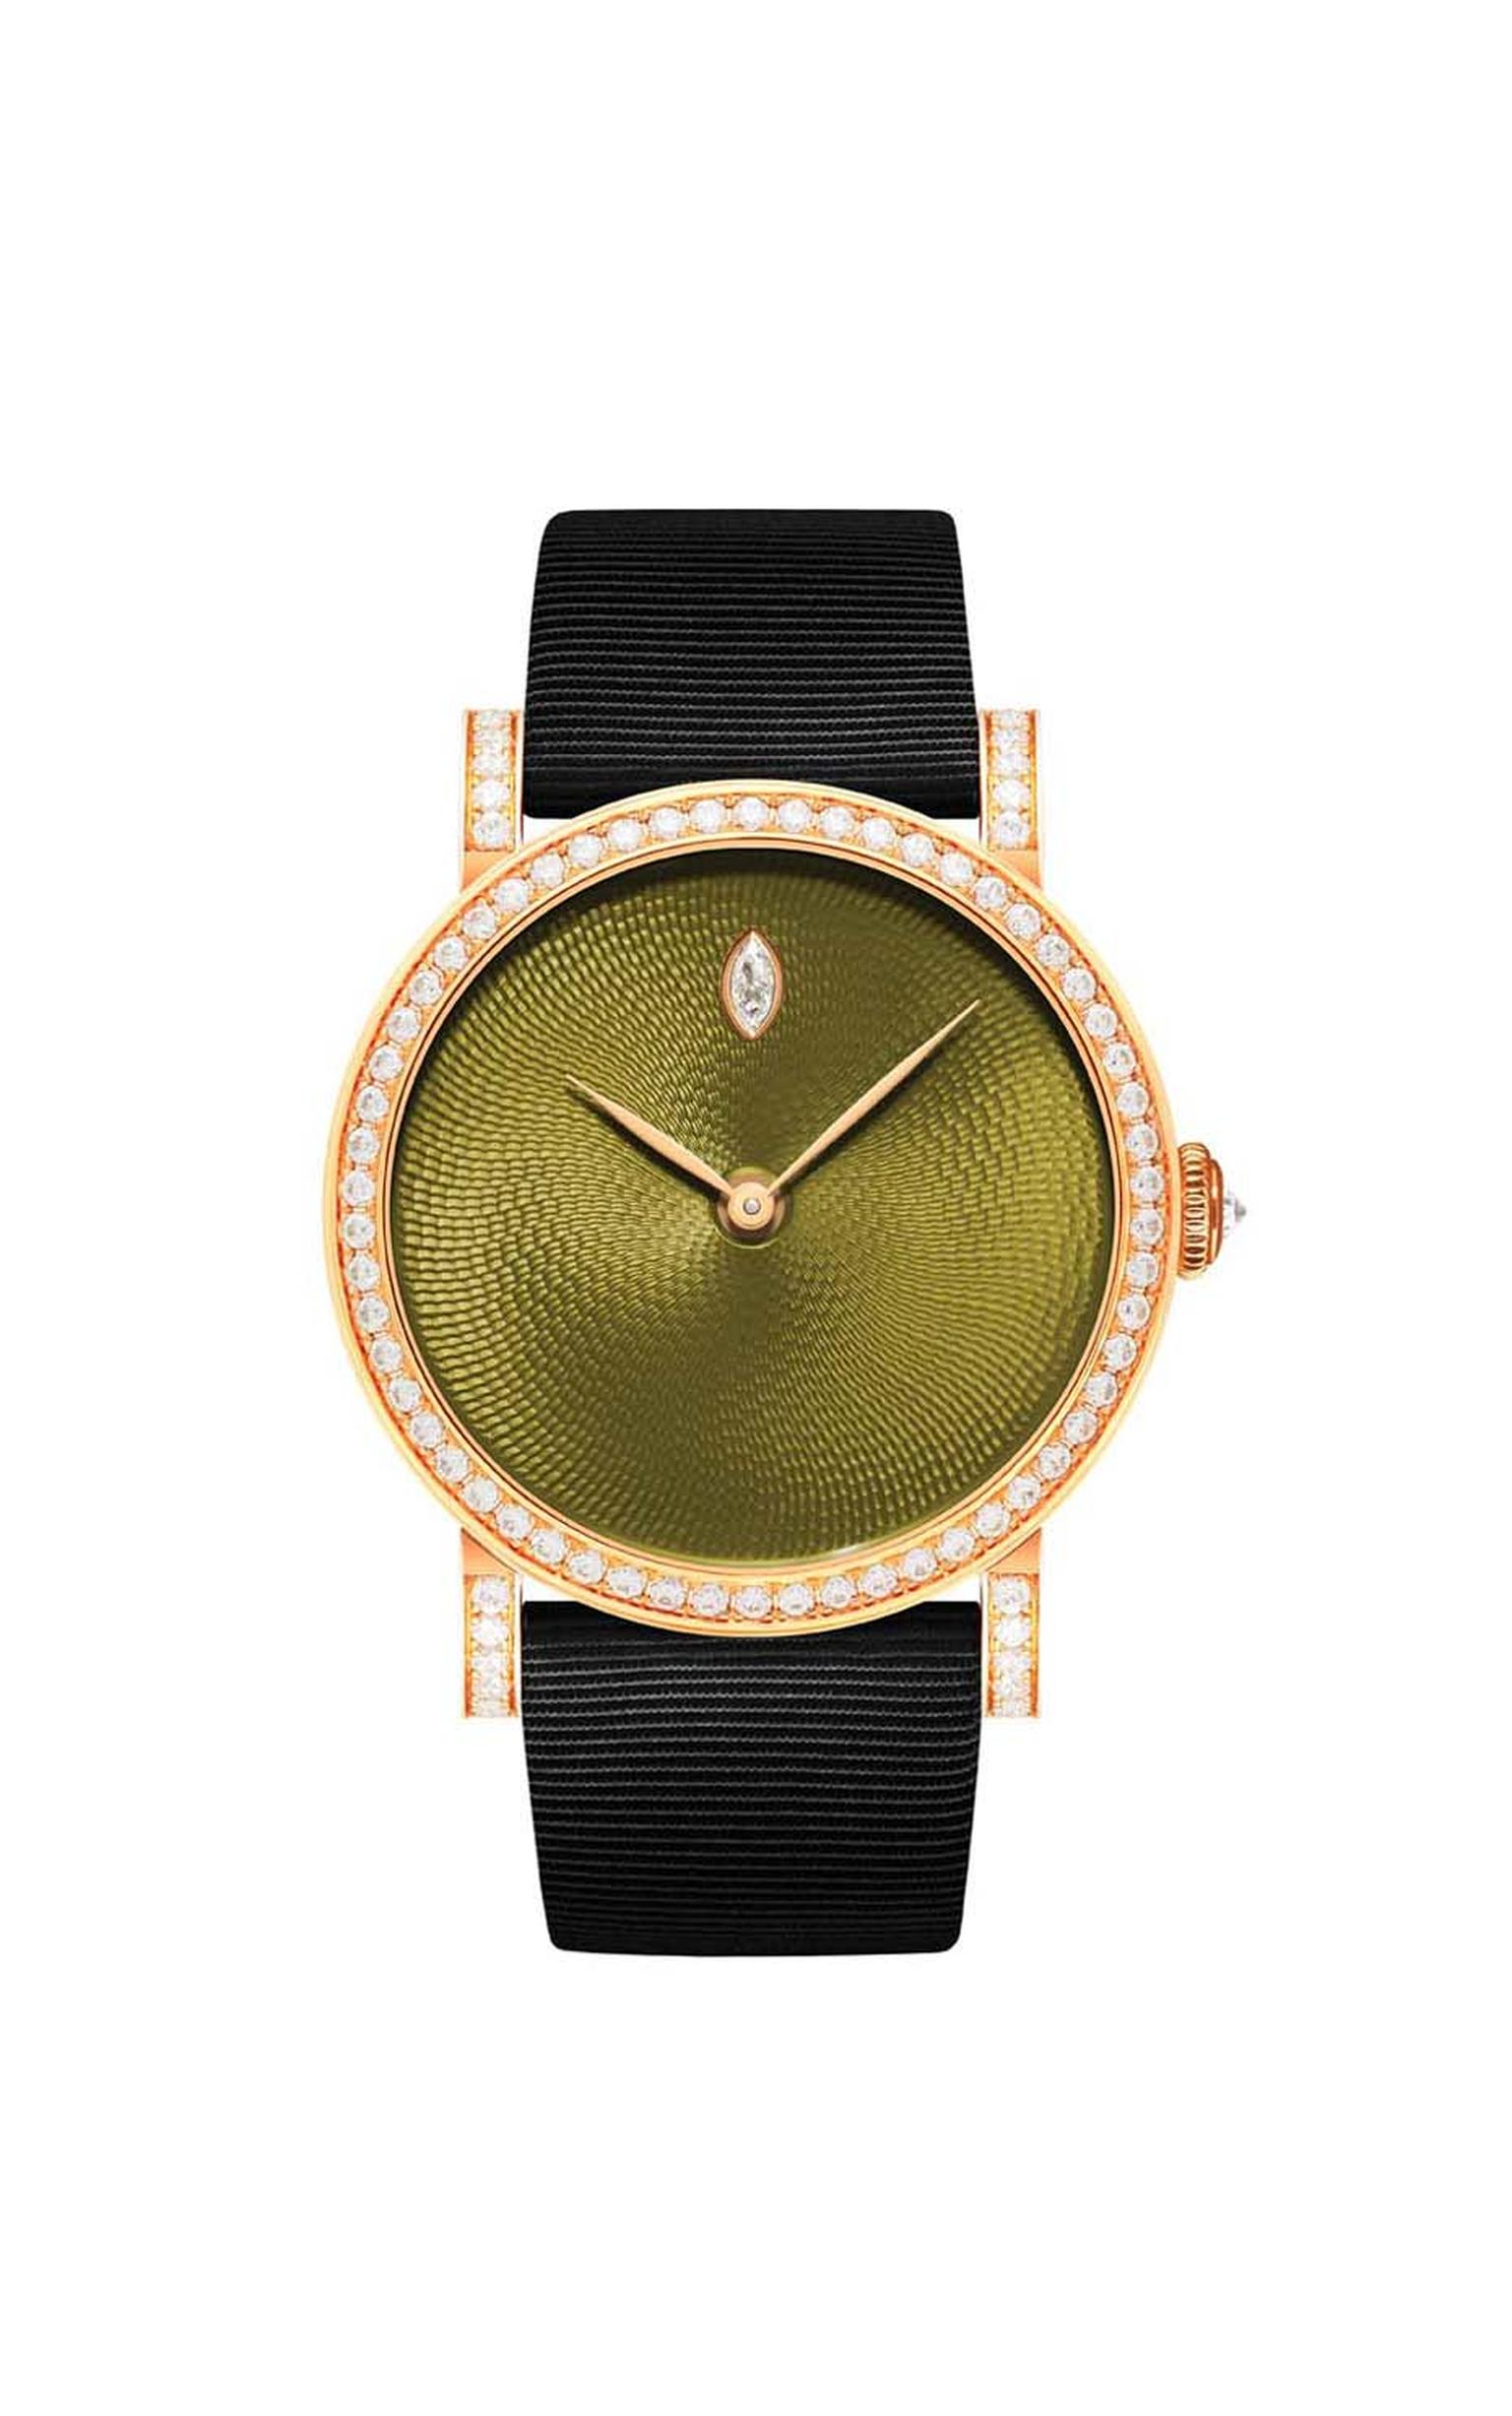 DeLaneau Rondo Translucent Meadow with a guilloché enamel dial and diamond-set bezel